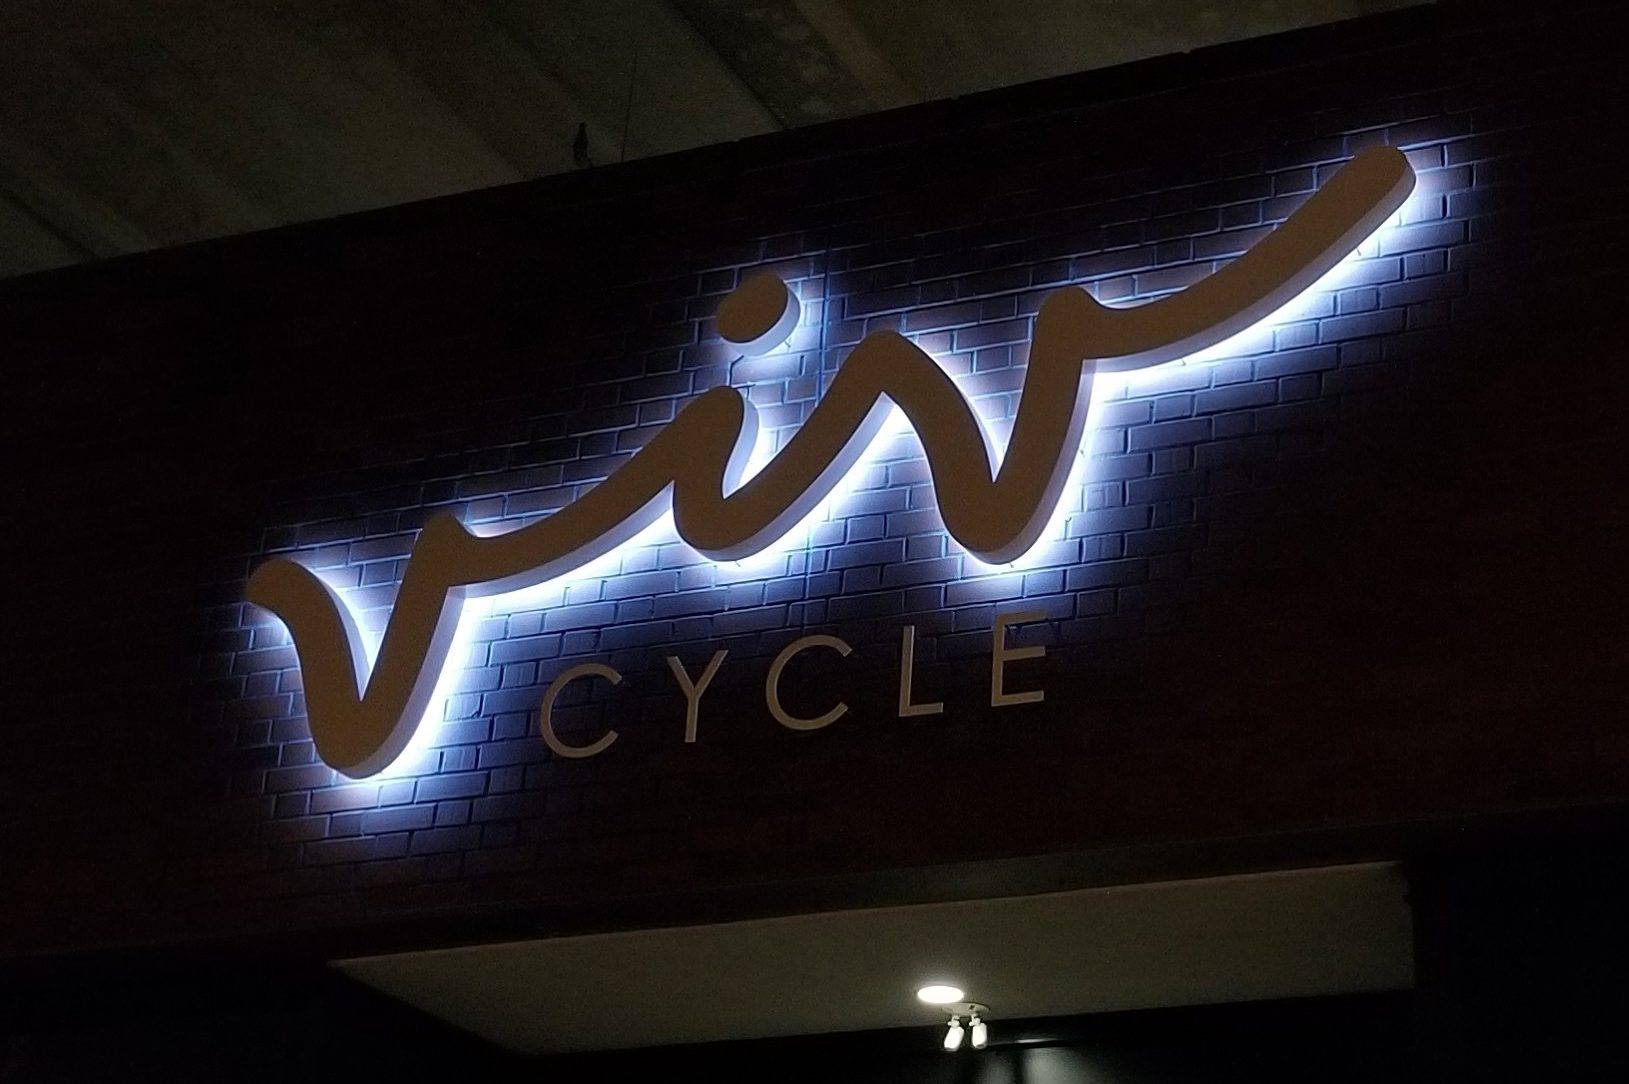 Viv Cycle